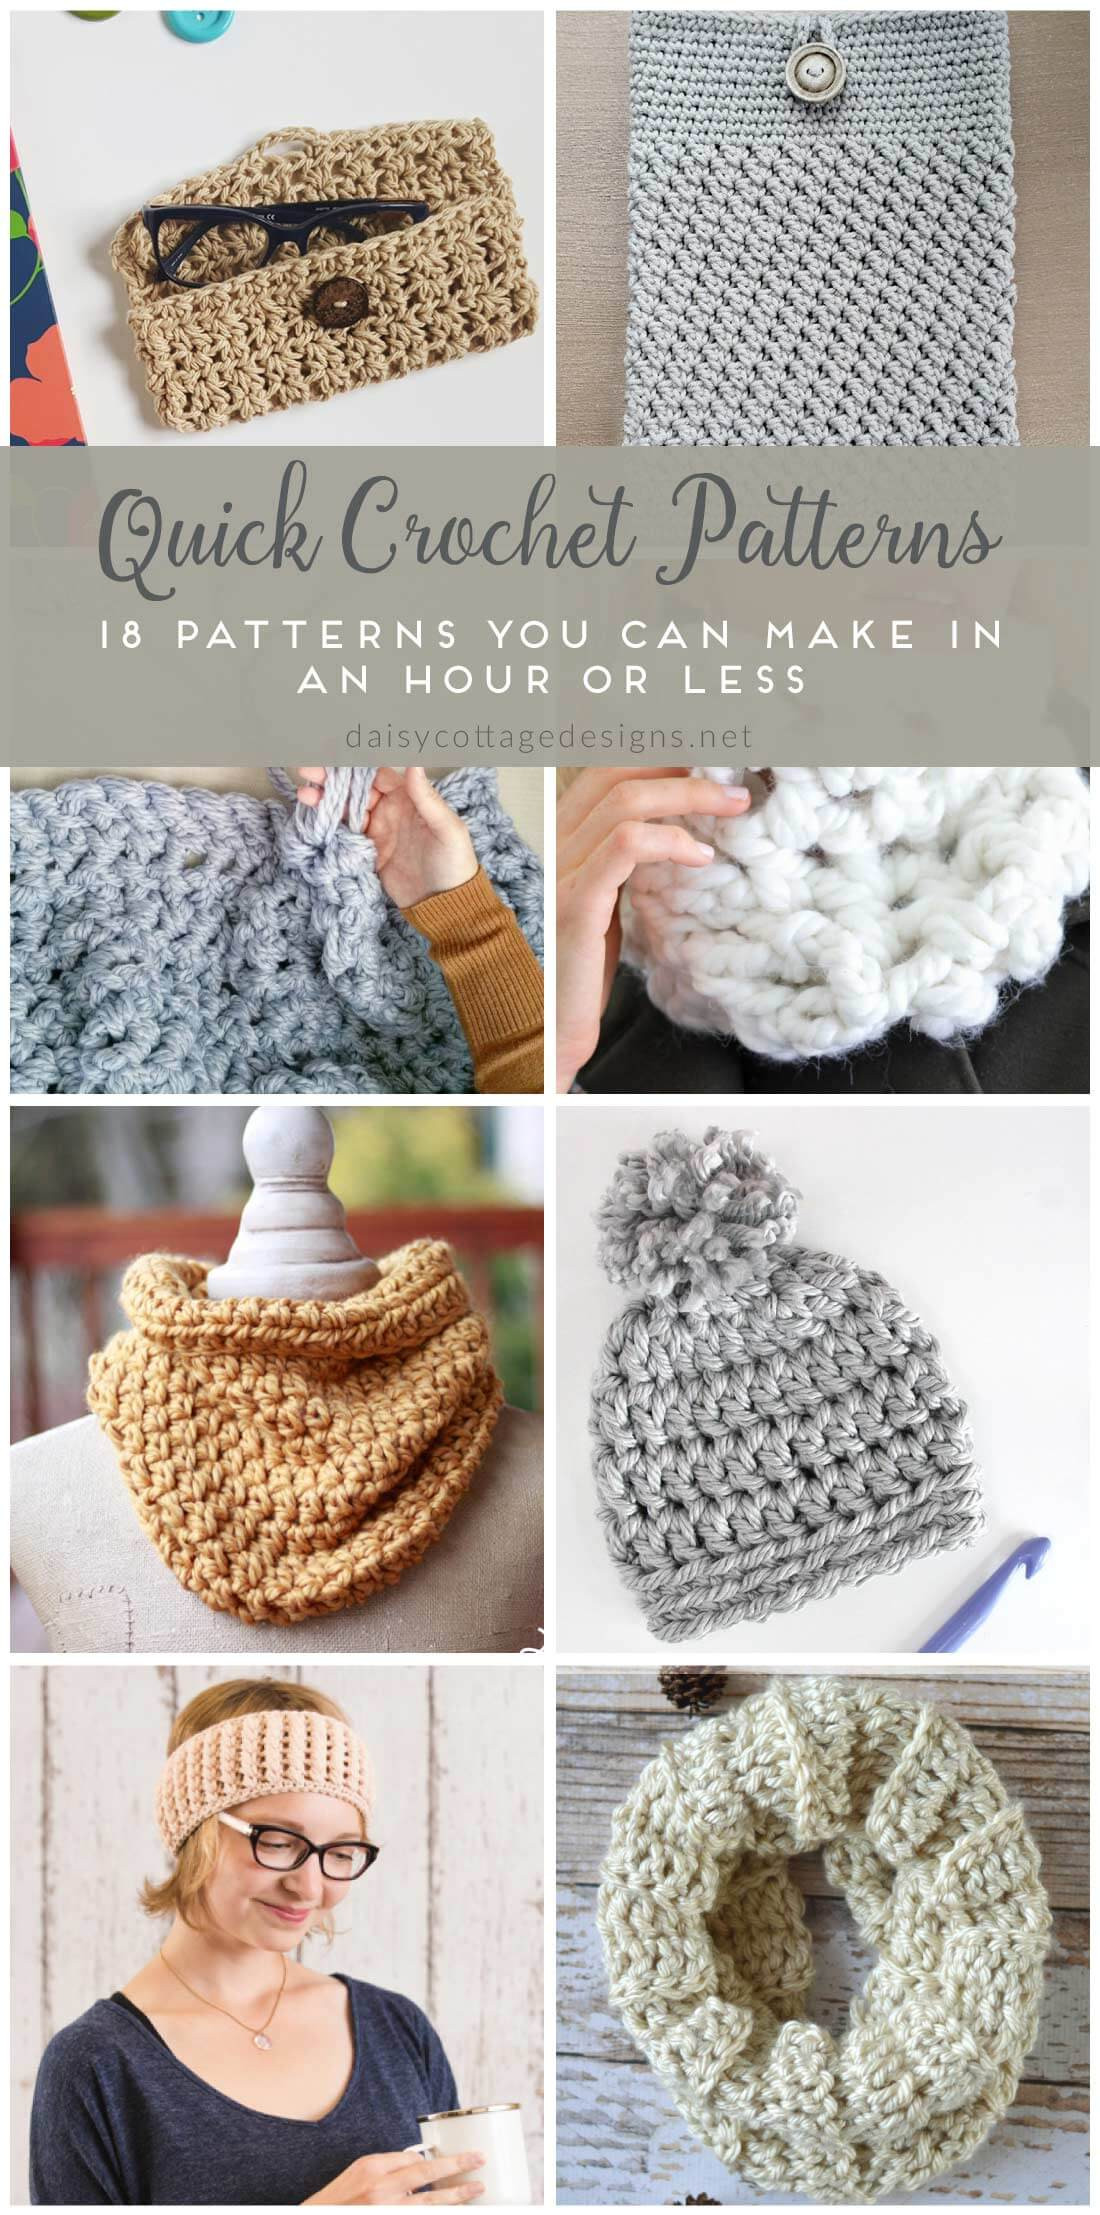 Quick and Easy Crochet Unique Easy Crochet Patterns Free Crochet Patterns On Daisy Of Incredible 48 Pics Quick and Easy Crochet